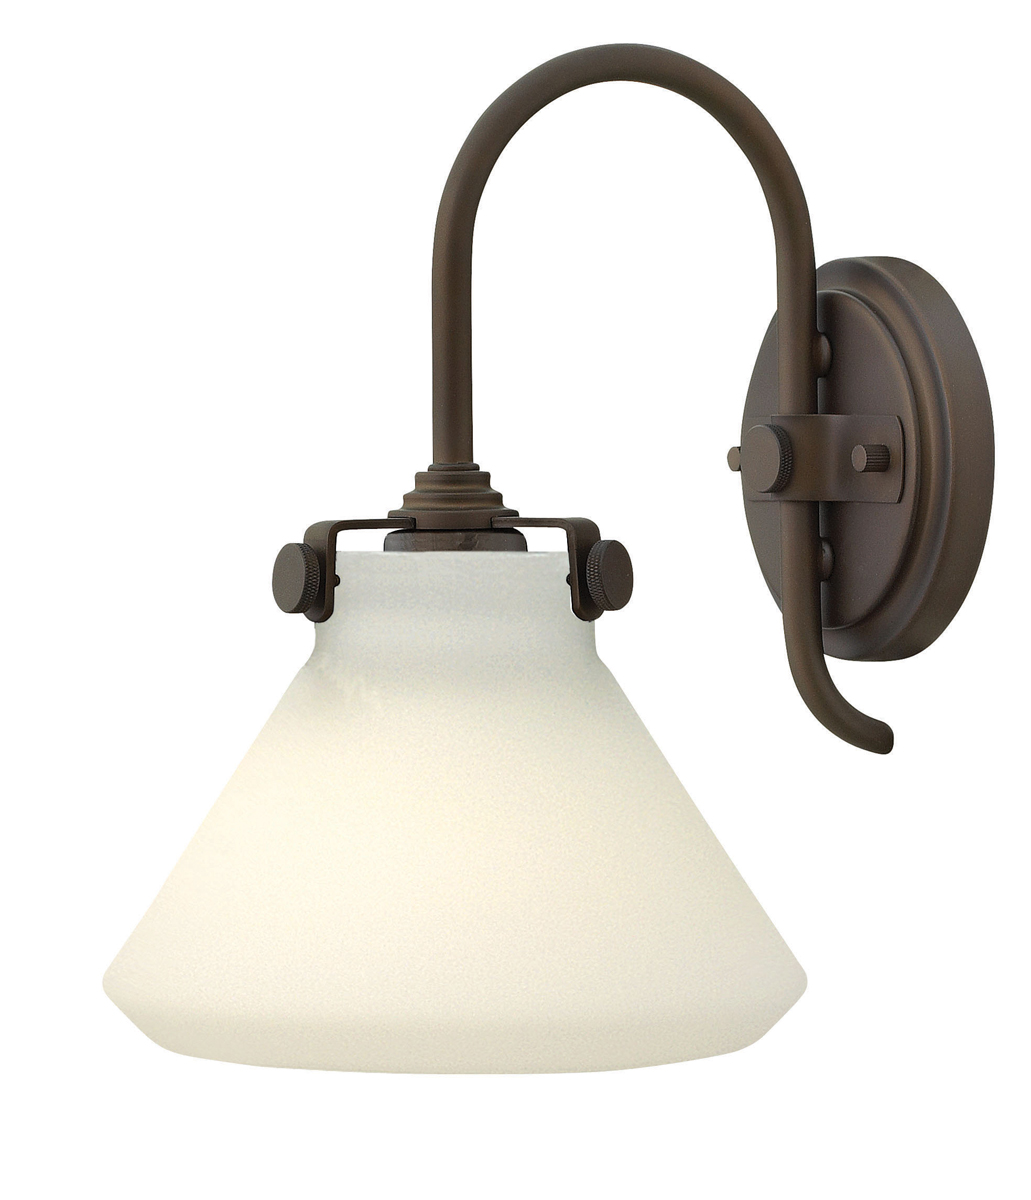 Hinkley Lighting (3170OZ) Congress Single Light Wall Sconce in Oil Rubbed Bronze with Etched ...